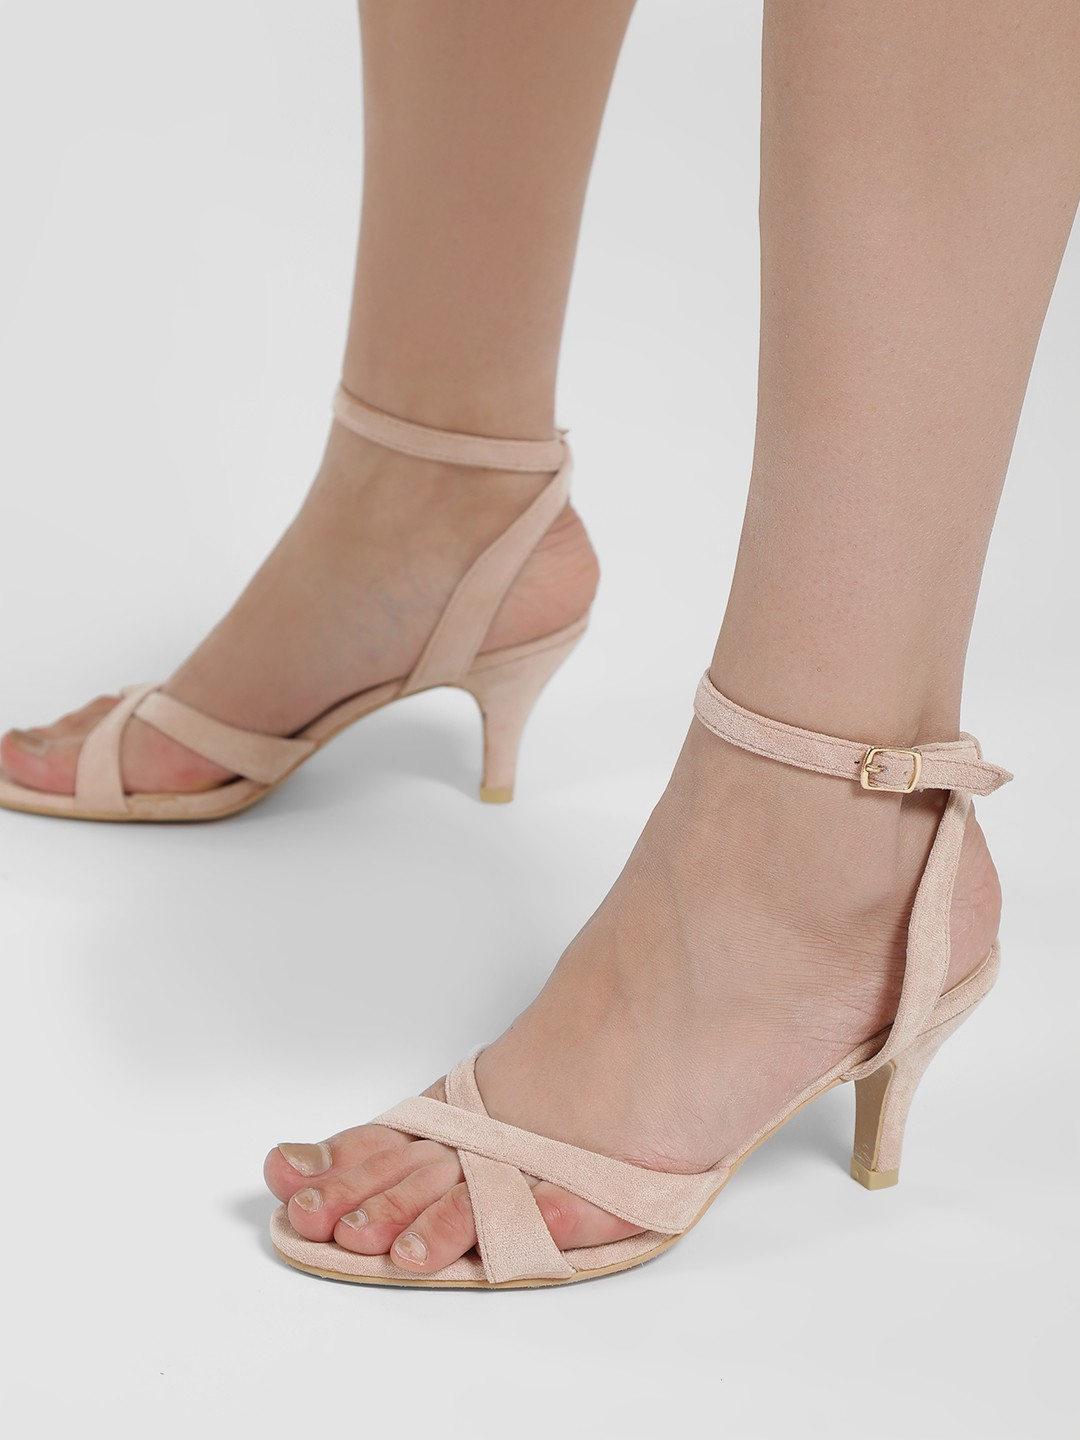 Sole Story Pink Suede Slingback Kitten Heeled Sandals 1